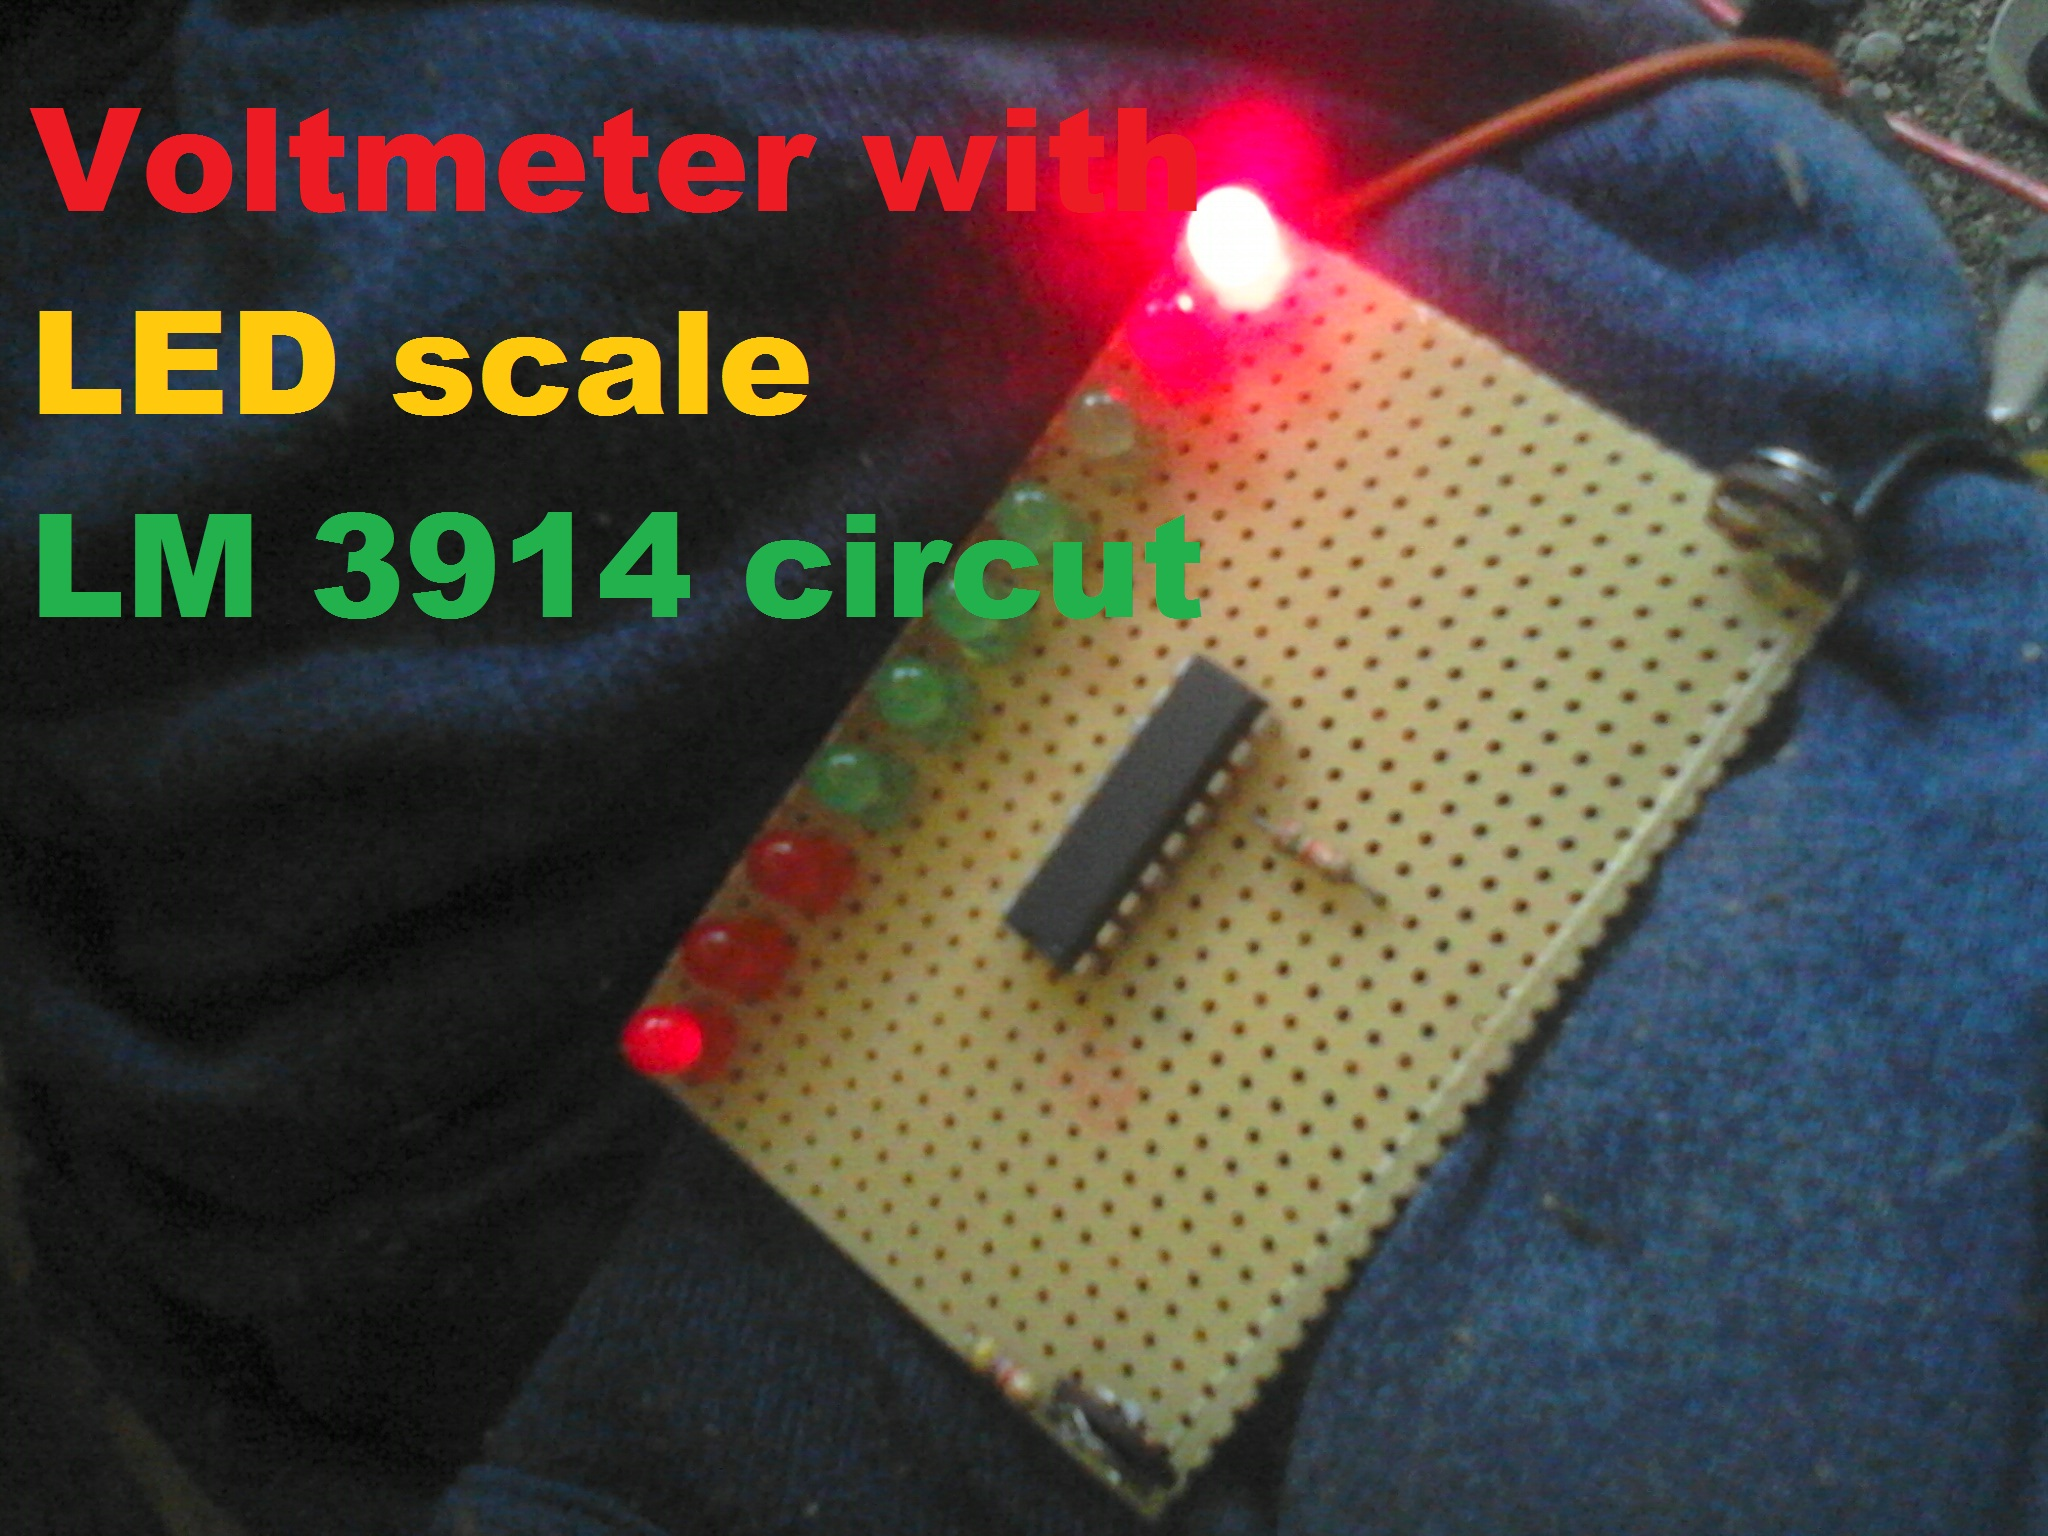 Voltmeter with LED scale  LM 3914 circut